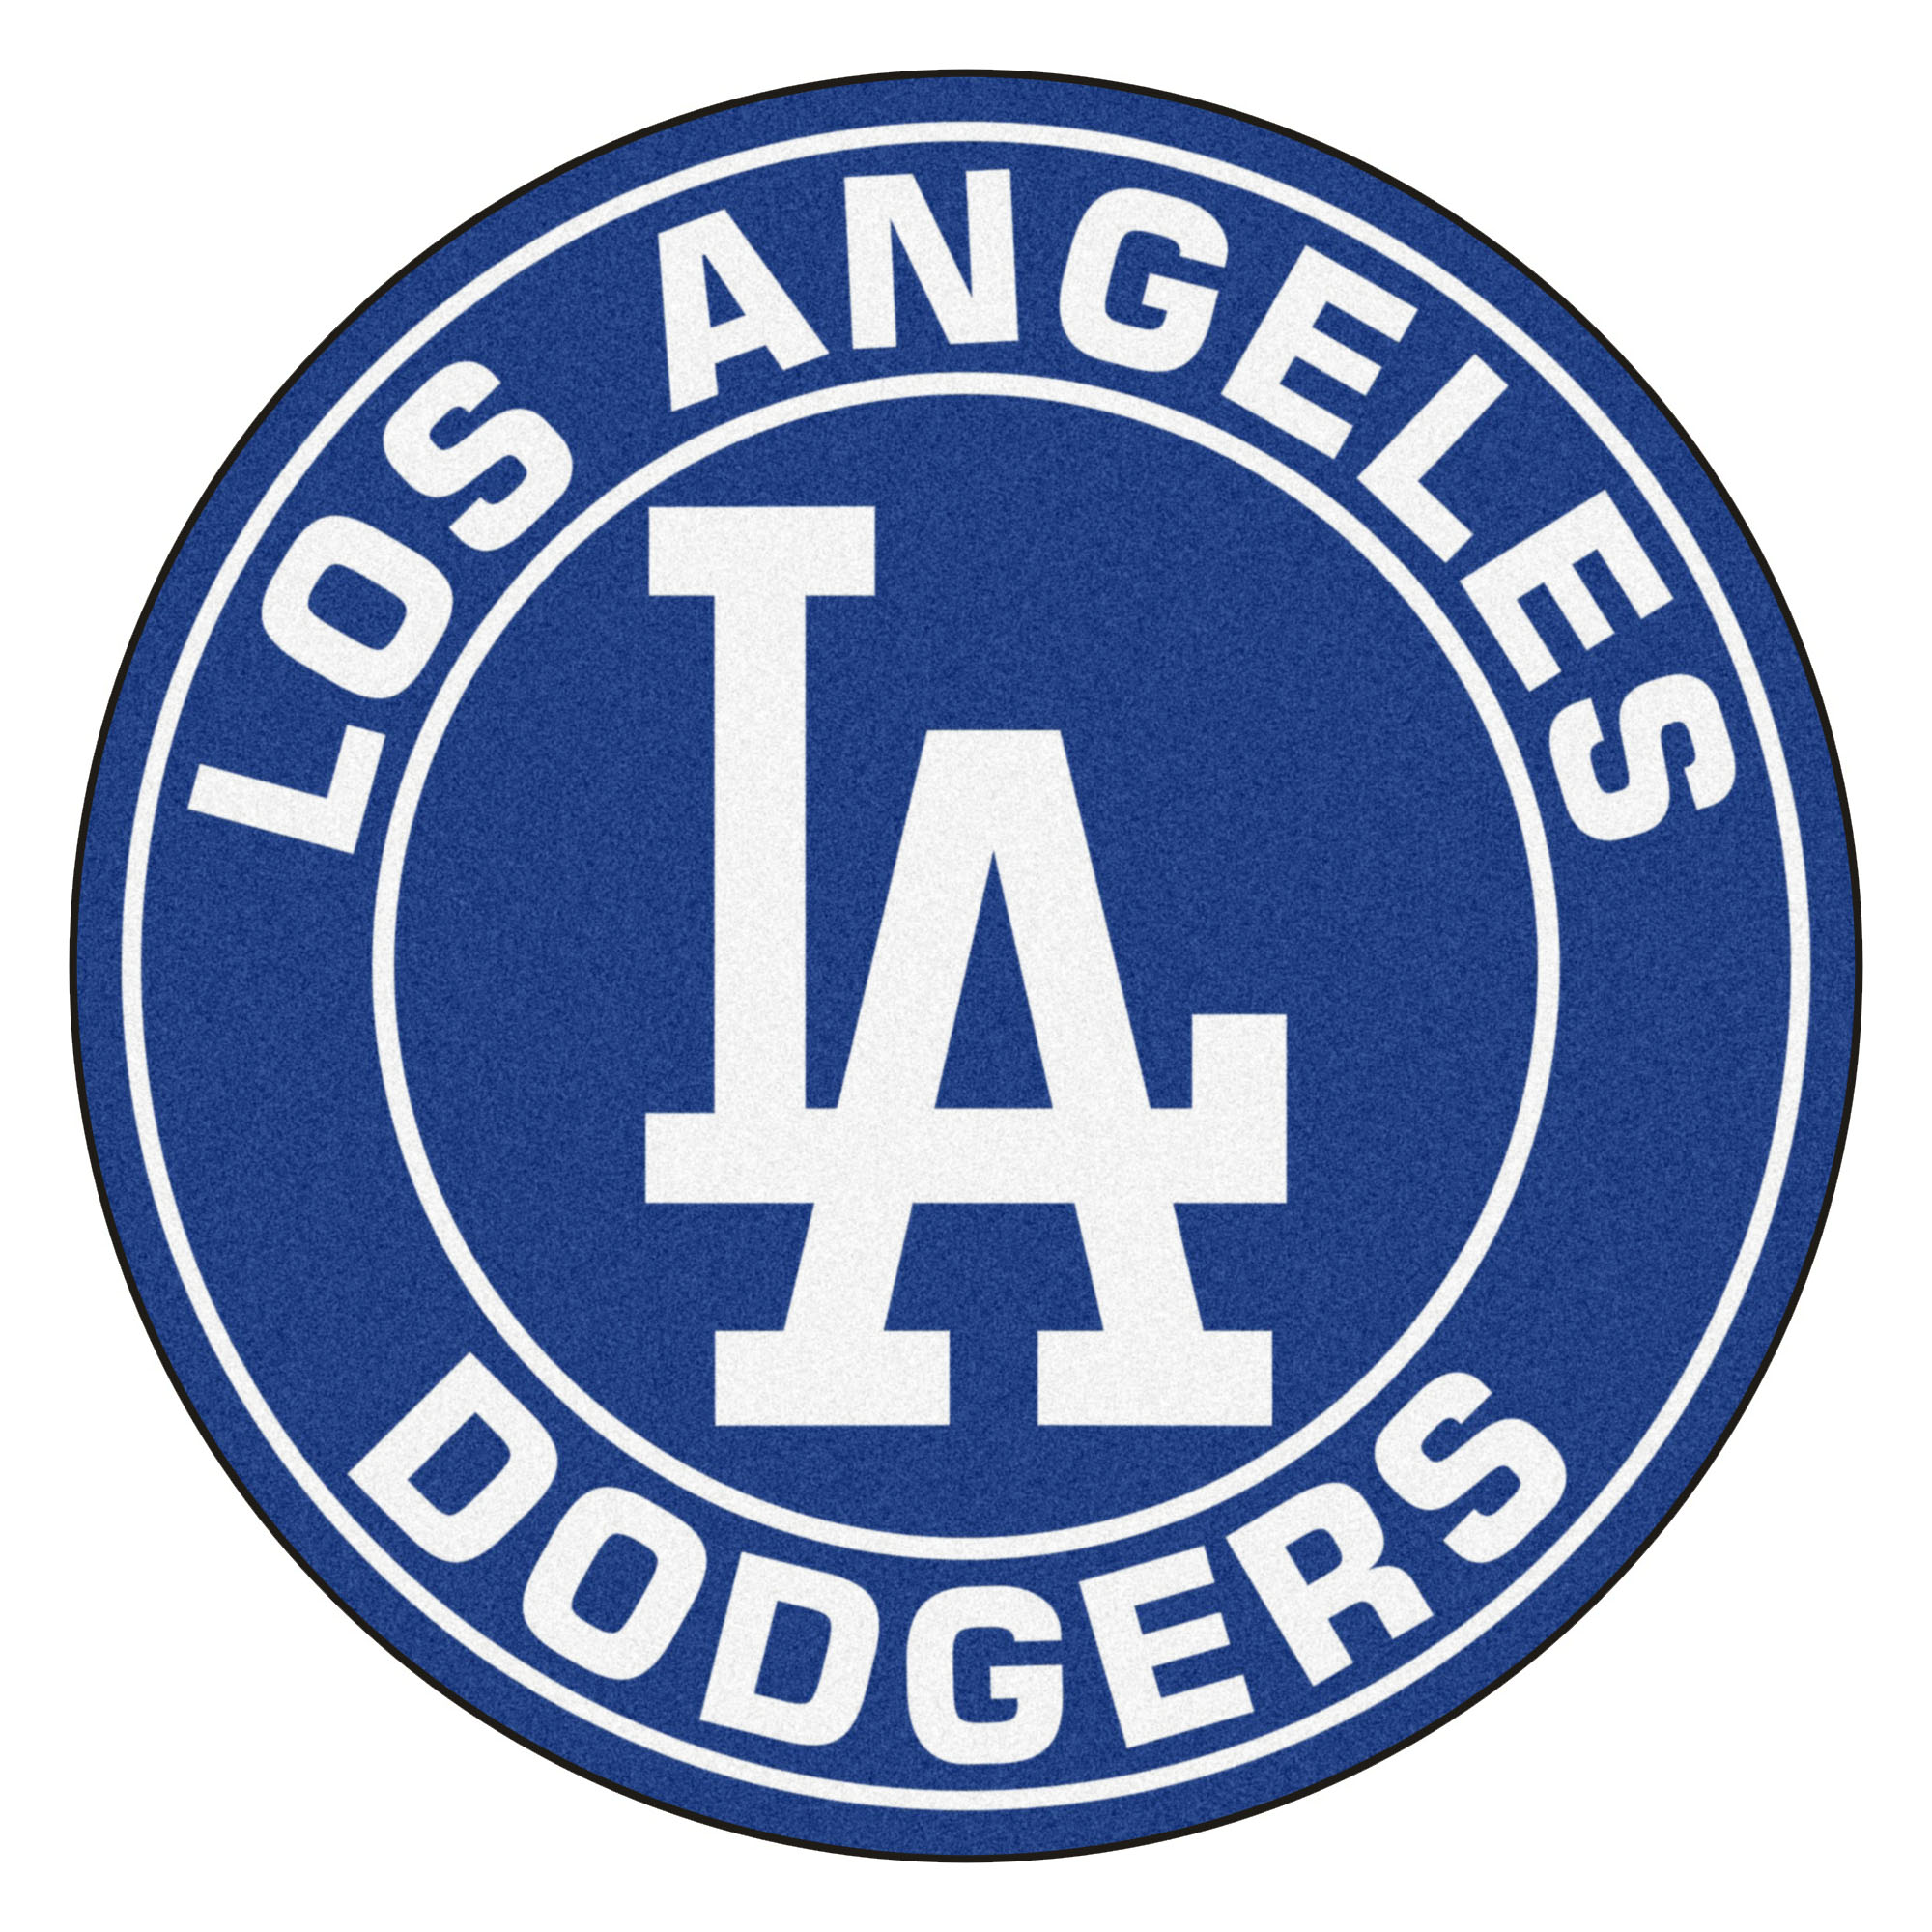 Presale Codes to purchase tickets for Los Angeles Dodgers 2017 Postseason games